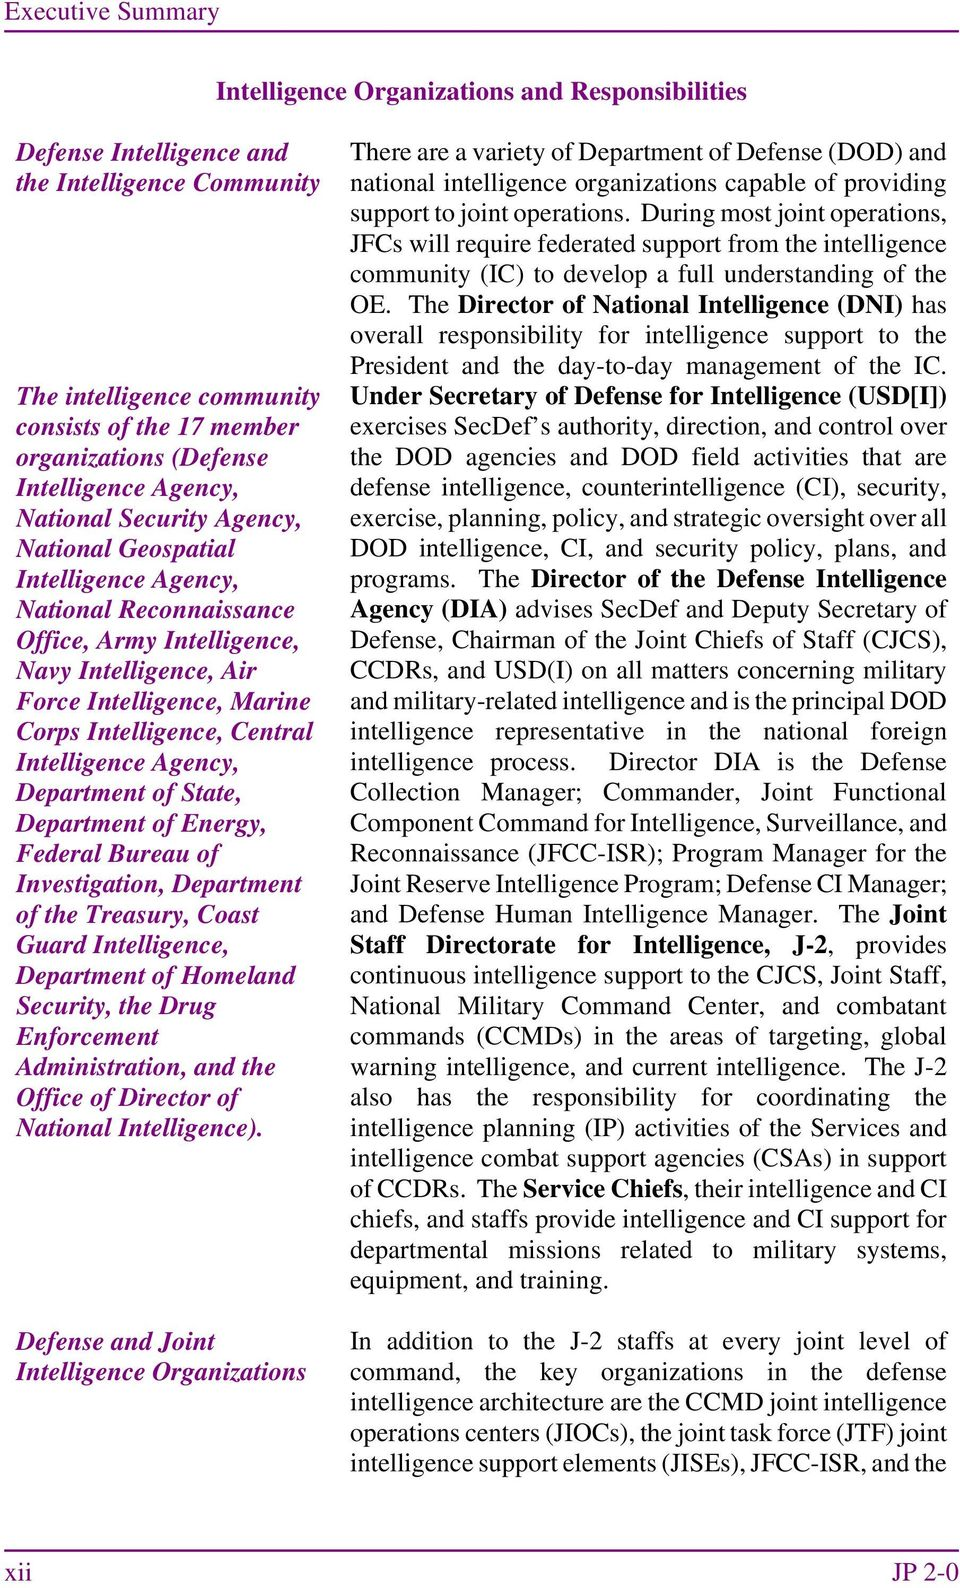 Intelligence, Central Intelligence Agency, Department of State, Department of Energy, Federal Bureau of Investigation, Department of the Treasury, Coast Guard Intelligence, Department of Homeland